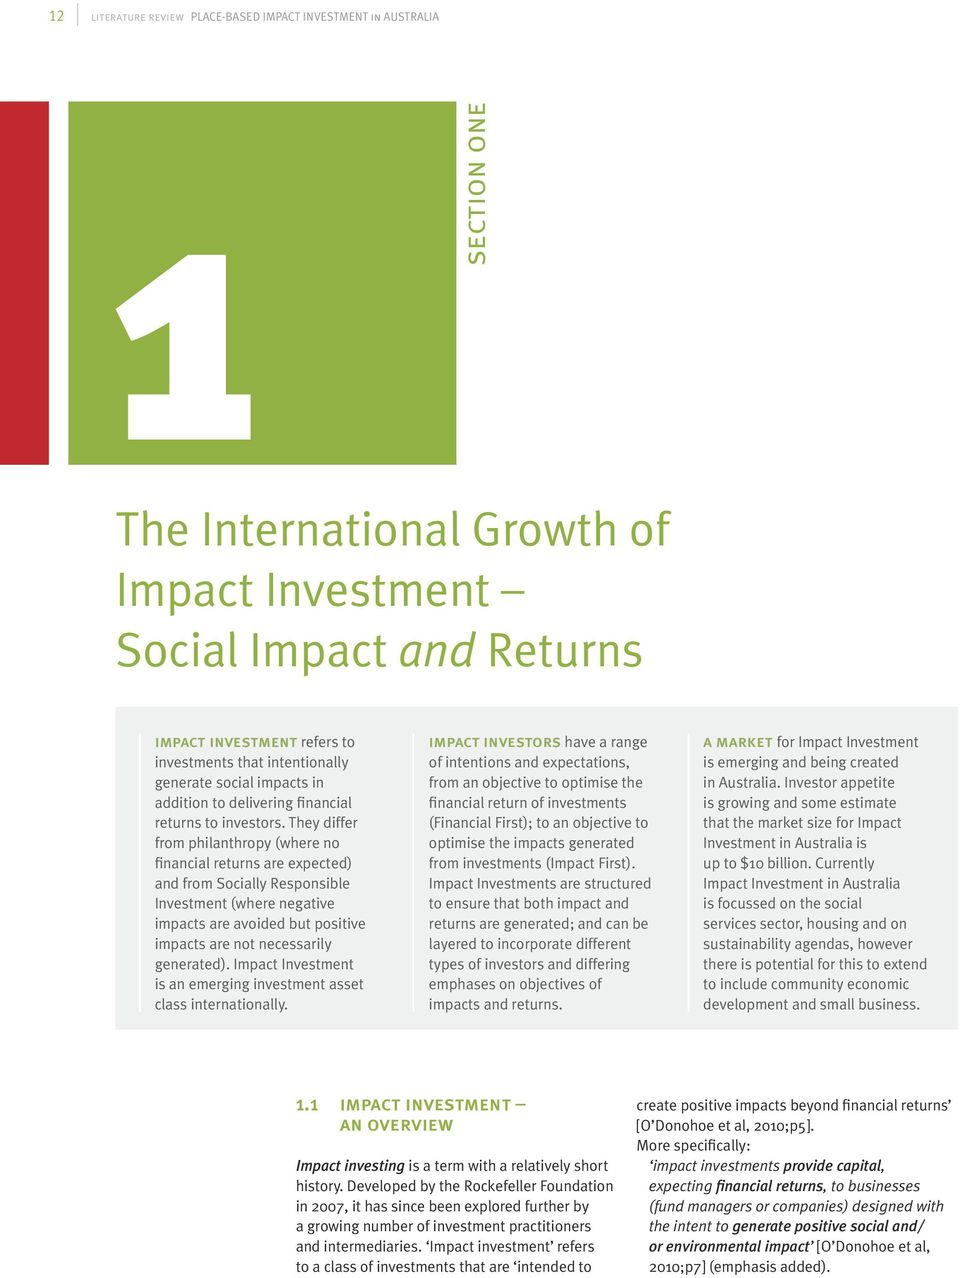 They differ from philanthropy (where no financial returns are expected) and from Socially Responsible Investment (where negative impacts are avoided but positive impacts are not necessarily